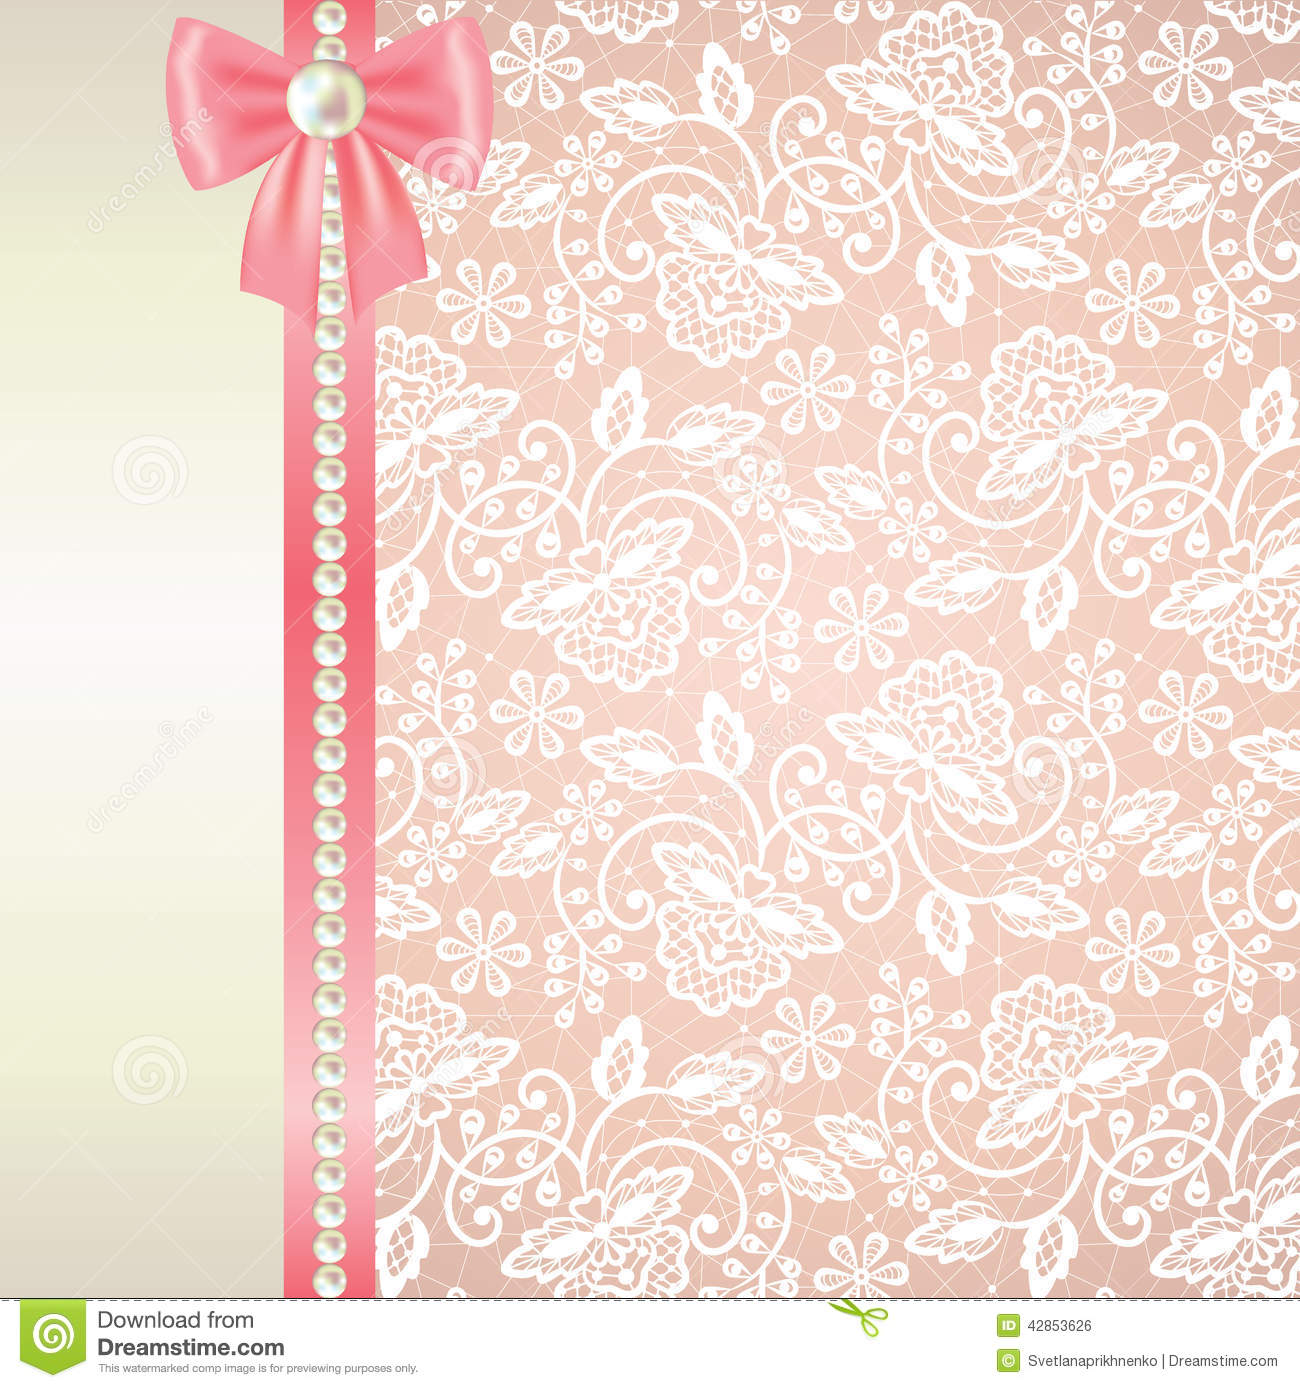 Lace Wedding Invitation is awesome invitations layout